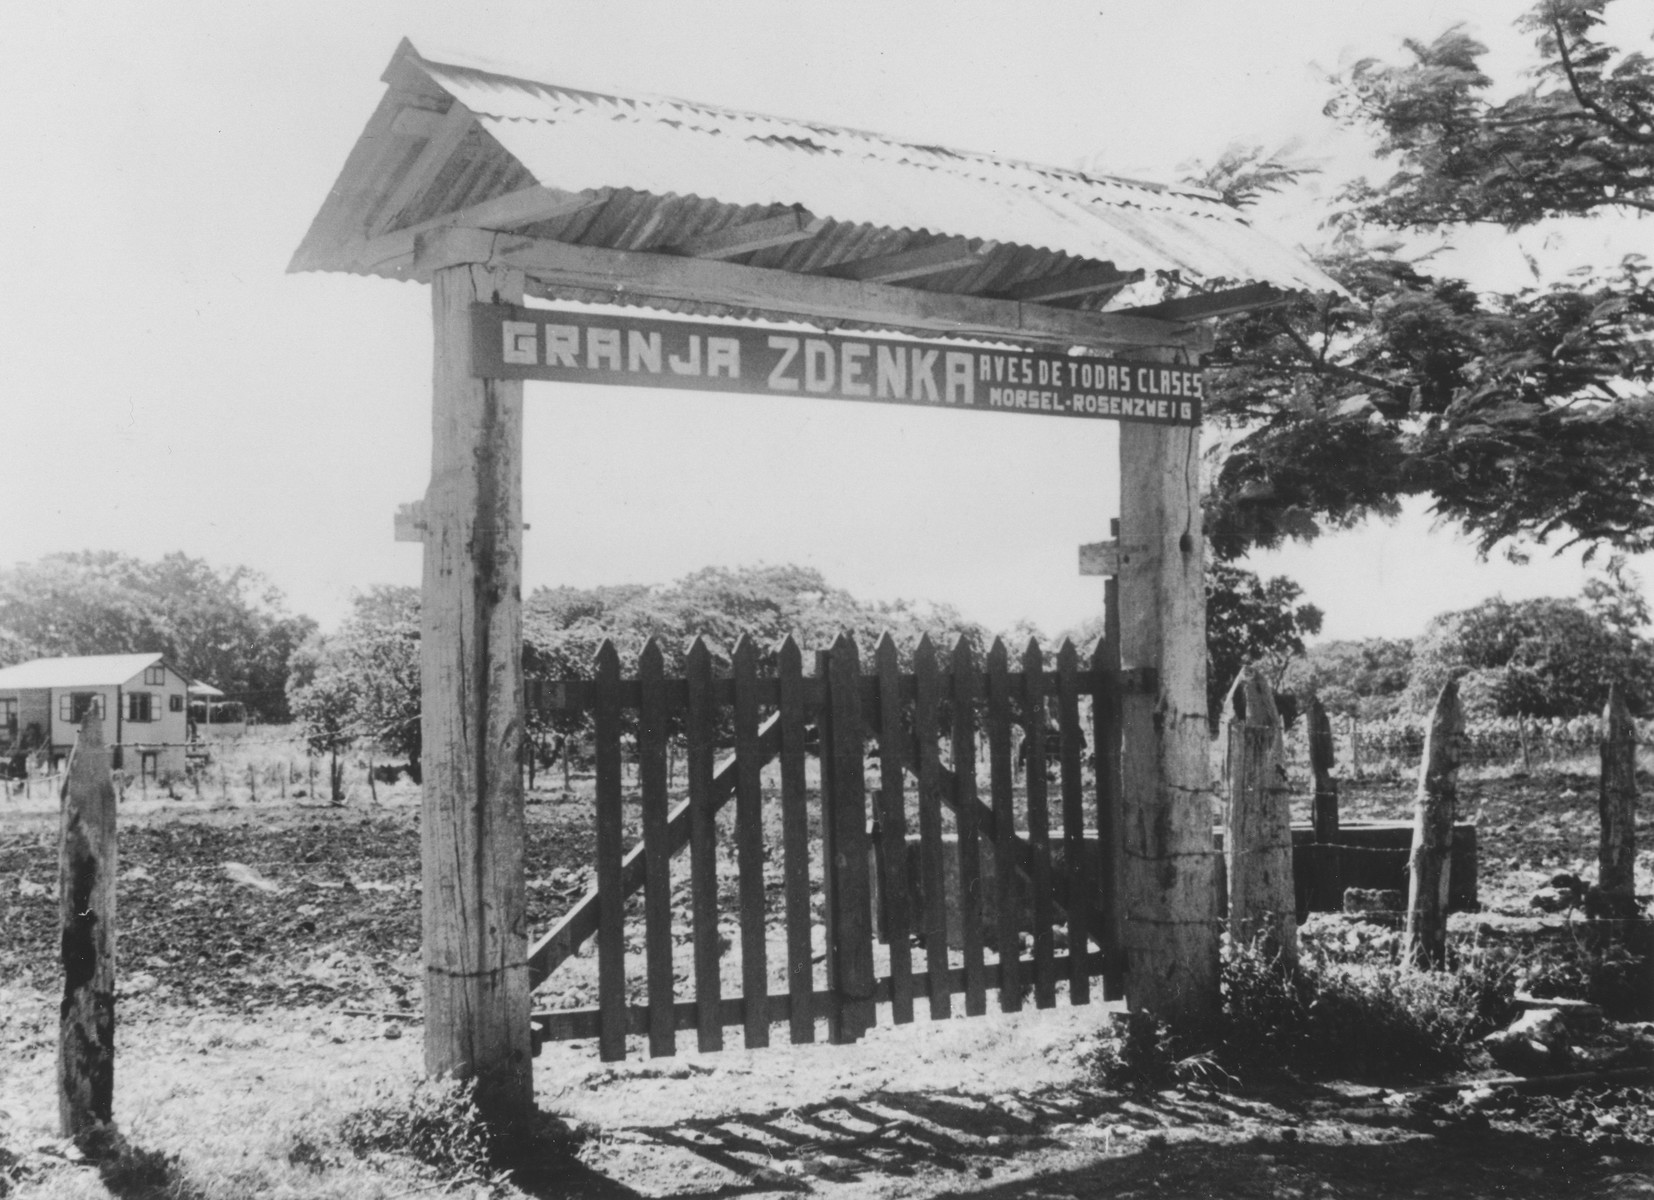 Entrance to Marek Morsel's farm in the Sosua Jewish refugee colony.  The farm was called Granja Zdenka for his wife.